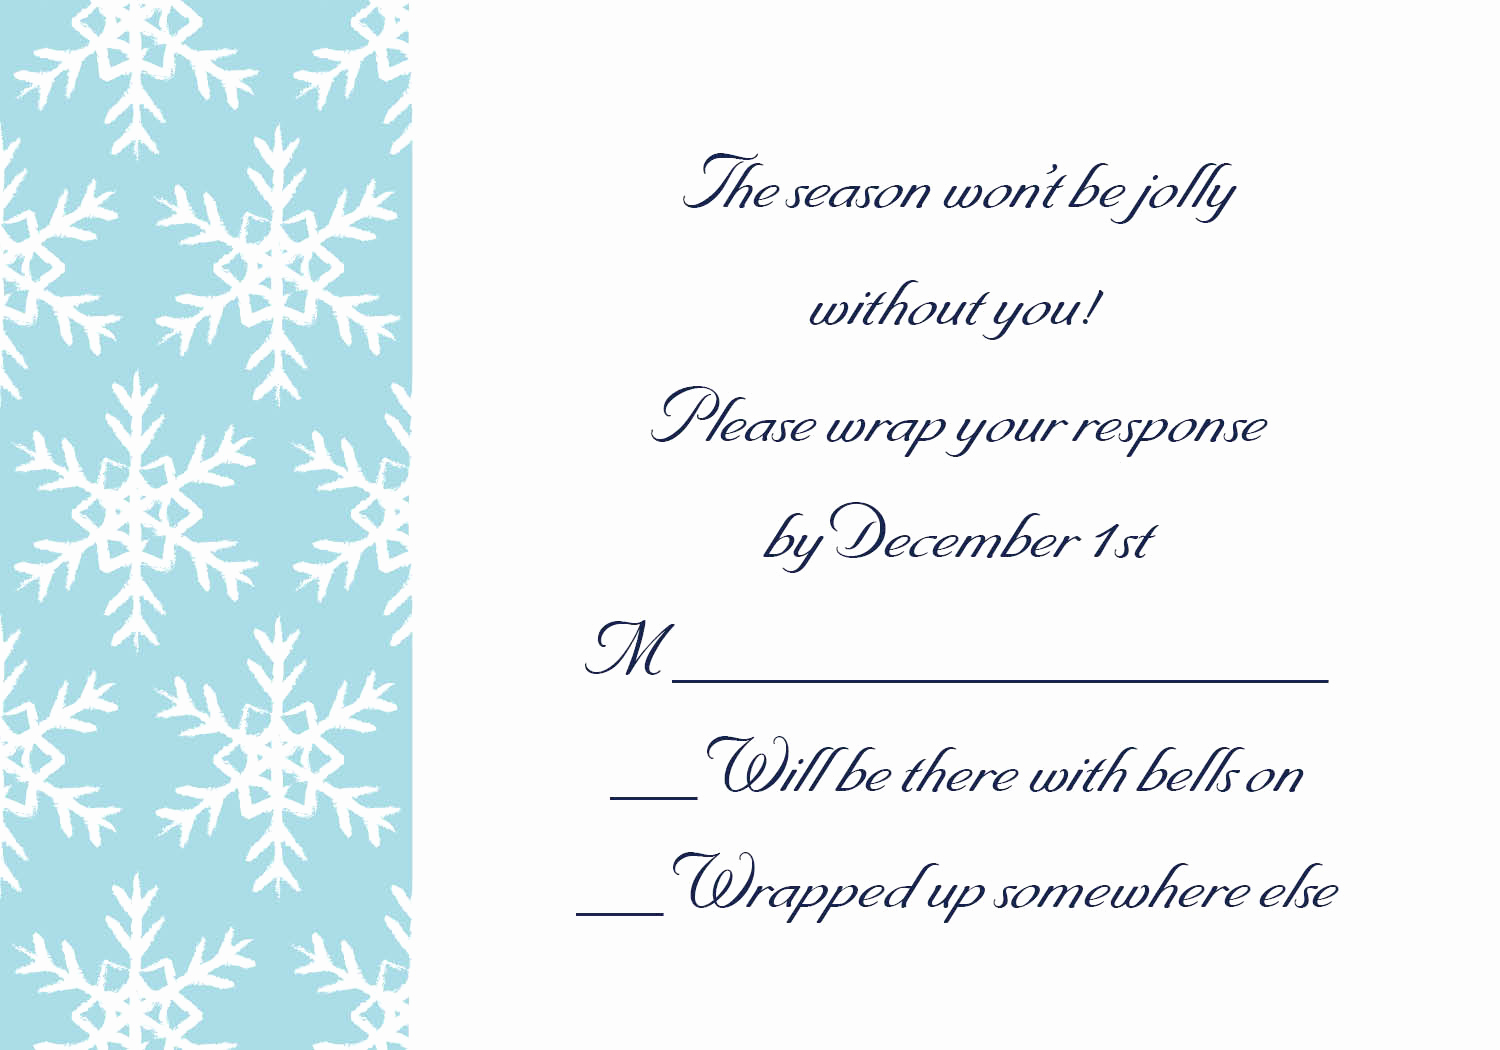 Farewell Party Invitation Wording Beautiful Farewell Party Invitation Card